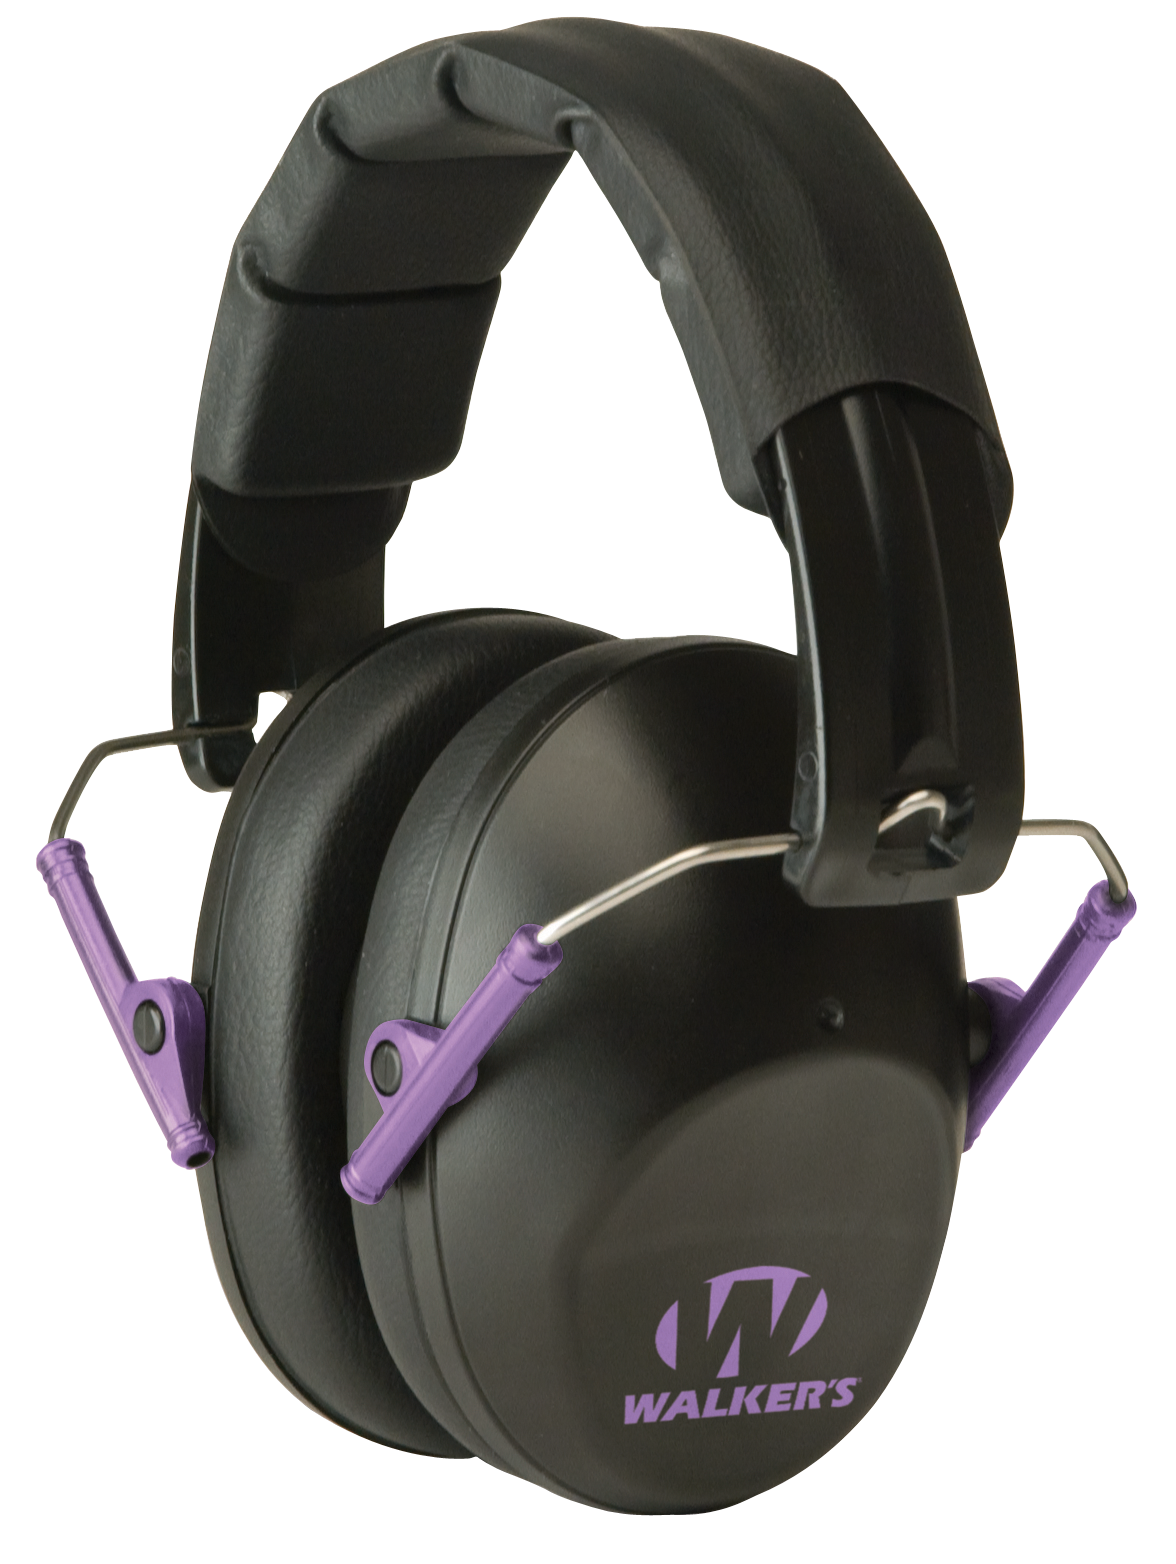 Walker's Pro Low Profile Passive Earmuffs NRR 22 dB - Black/Purple